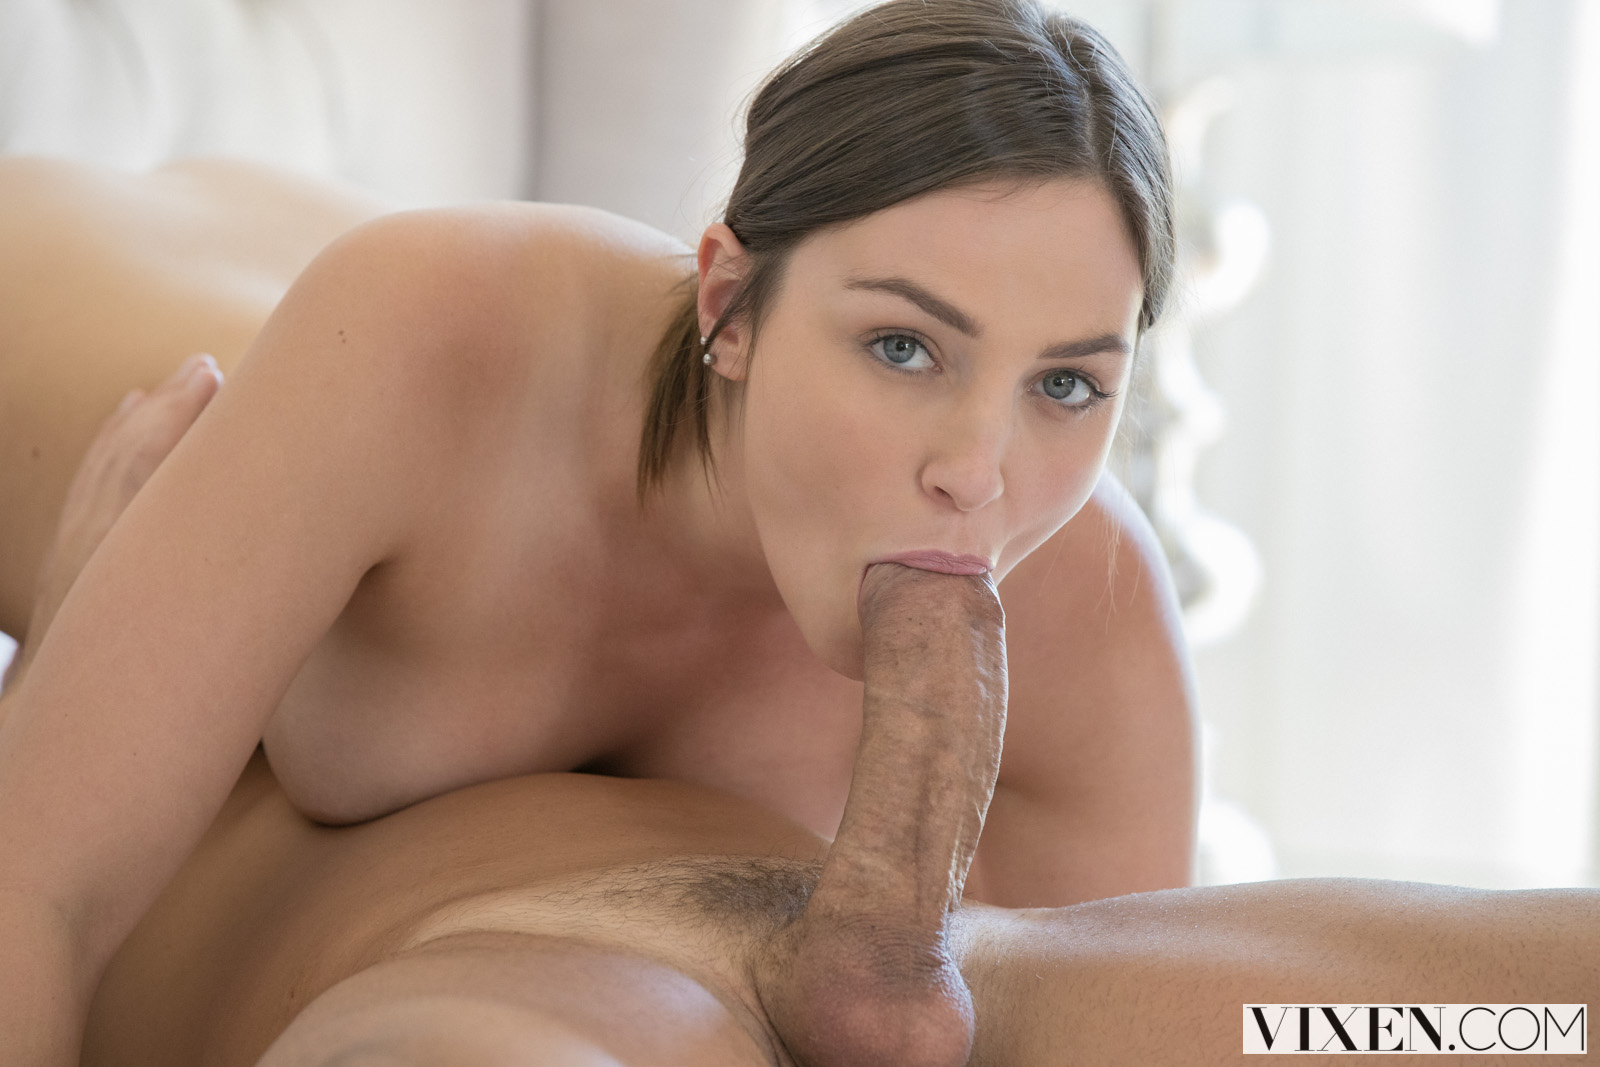 Petite kendall woods gets fucked - 2 part 6